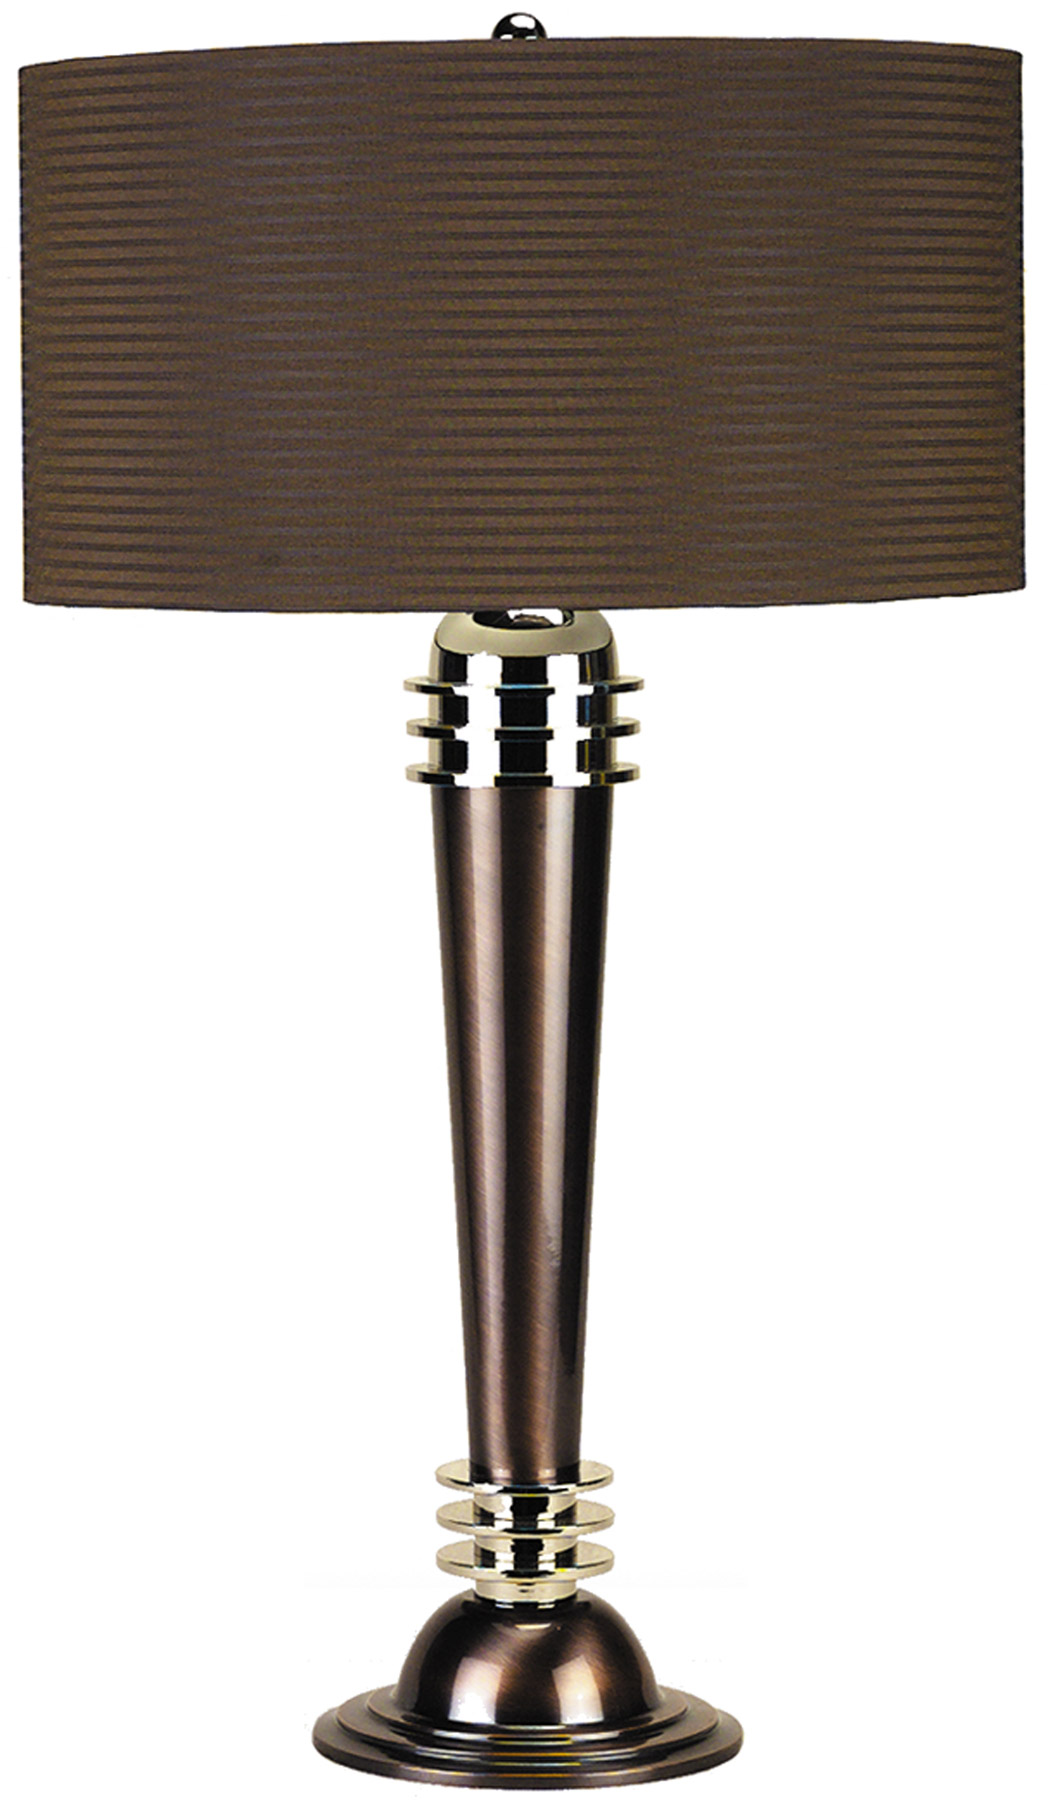 Frederick Cooper Table Lamps A Staple In Every Home